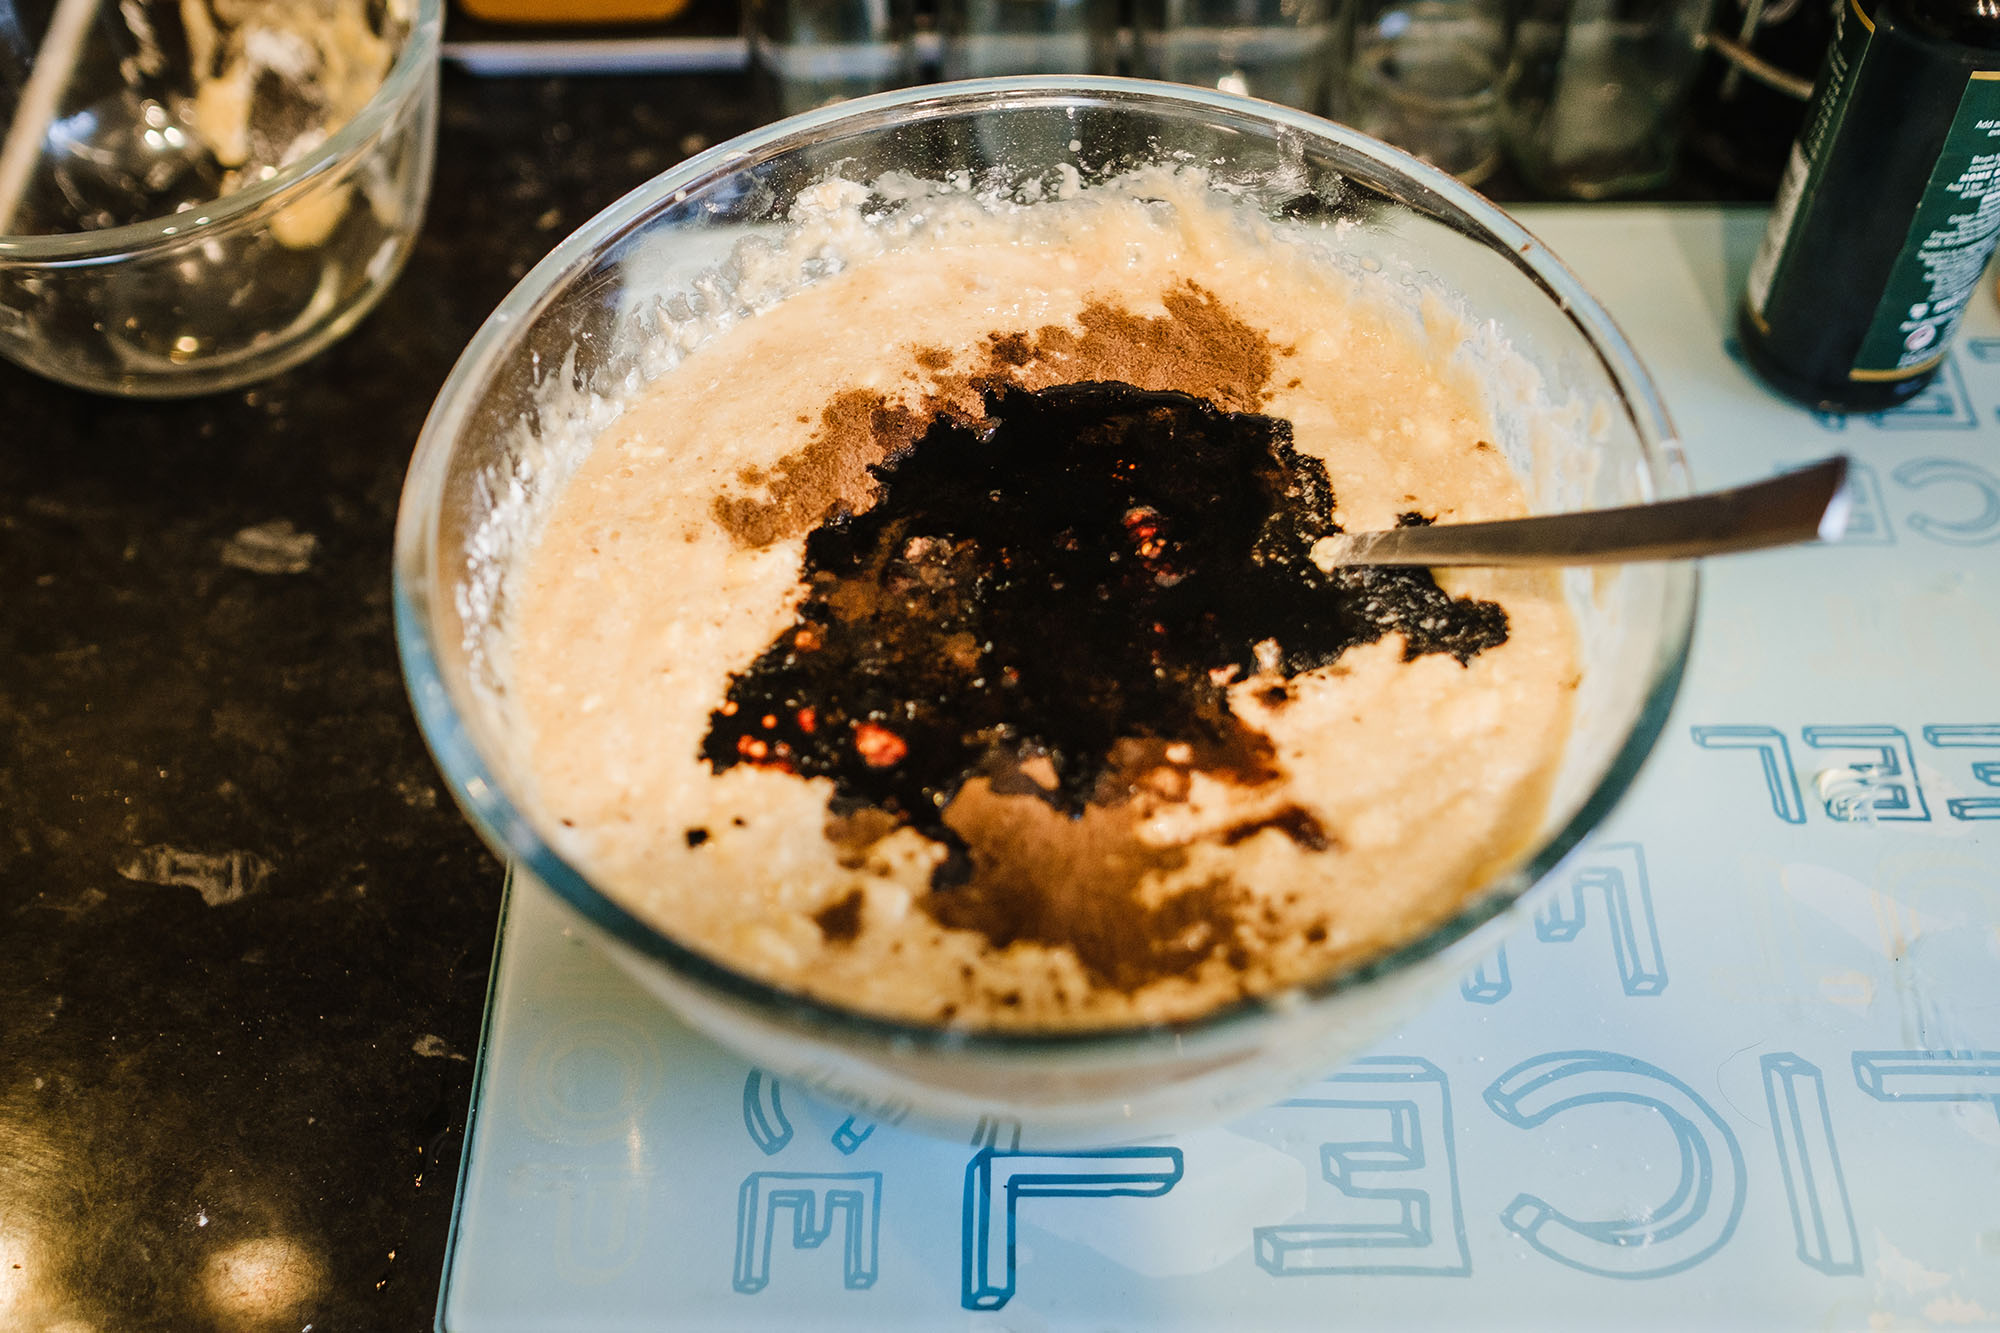 recipe for making rum and fruit cake